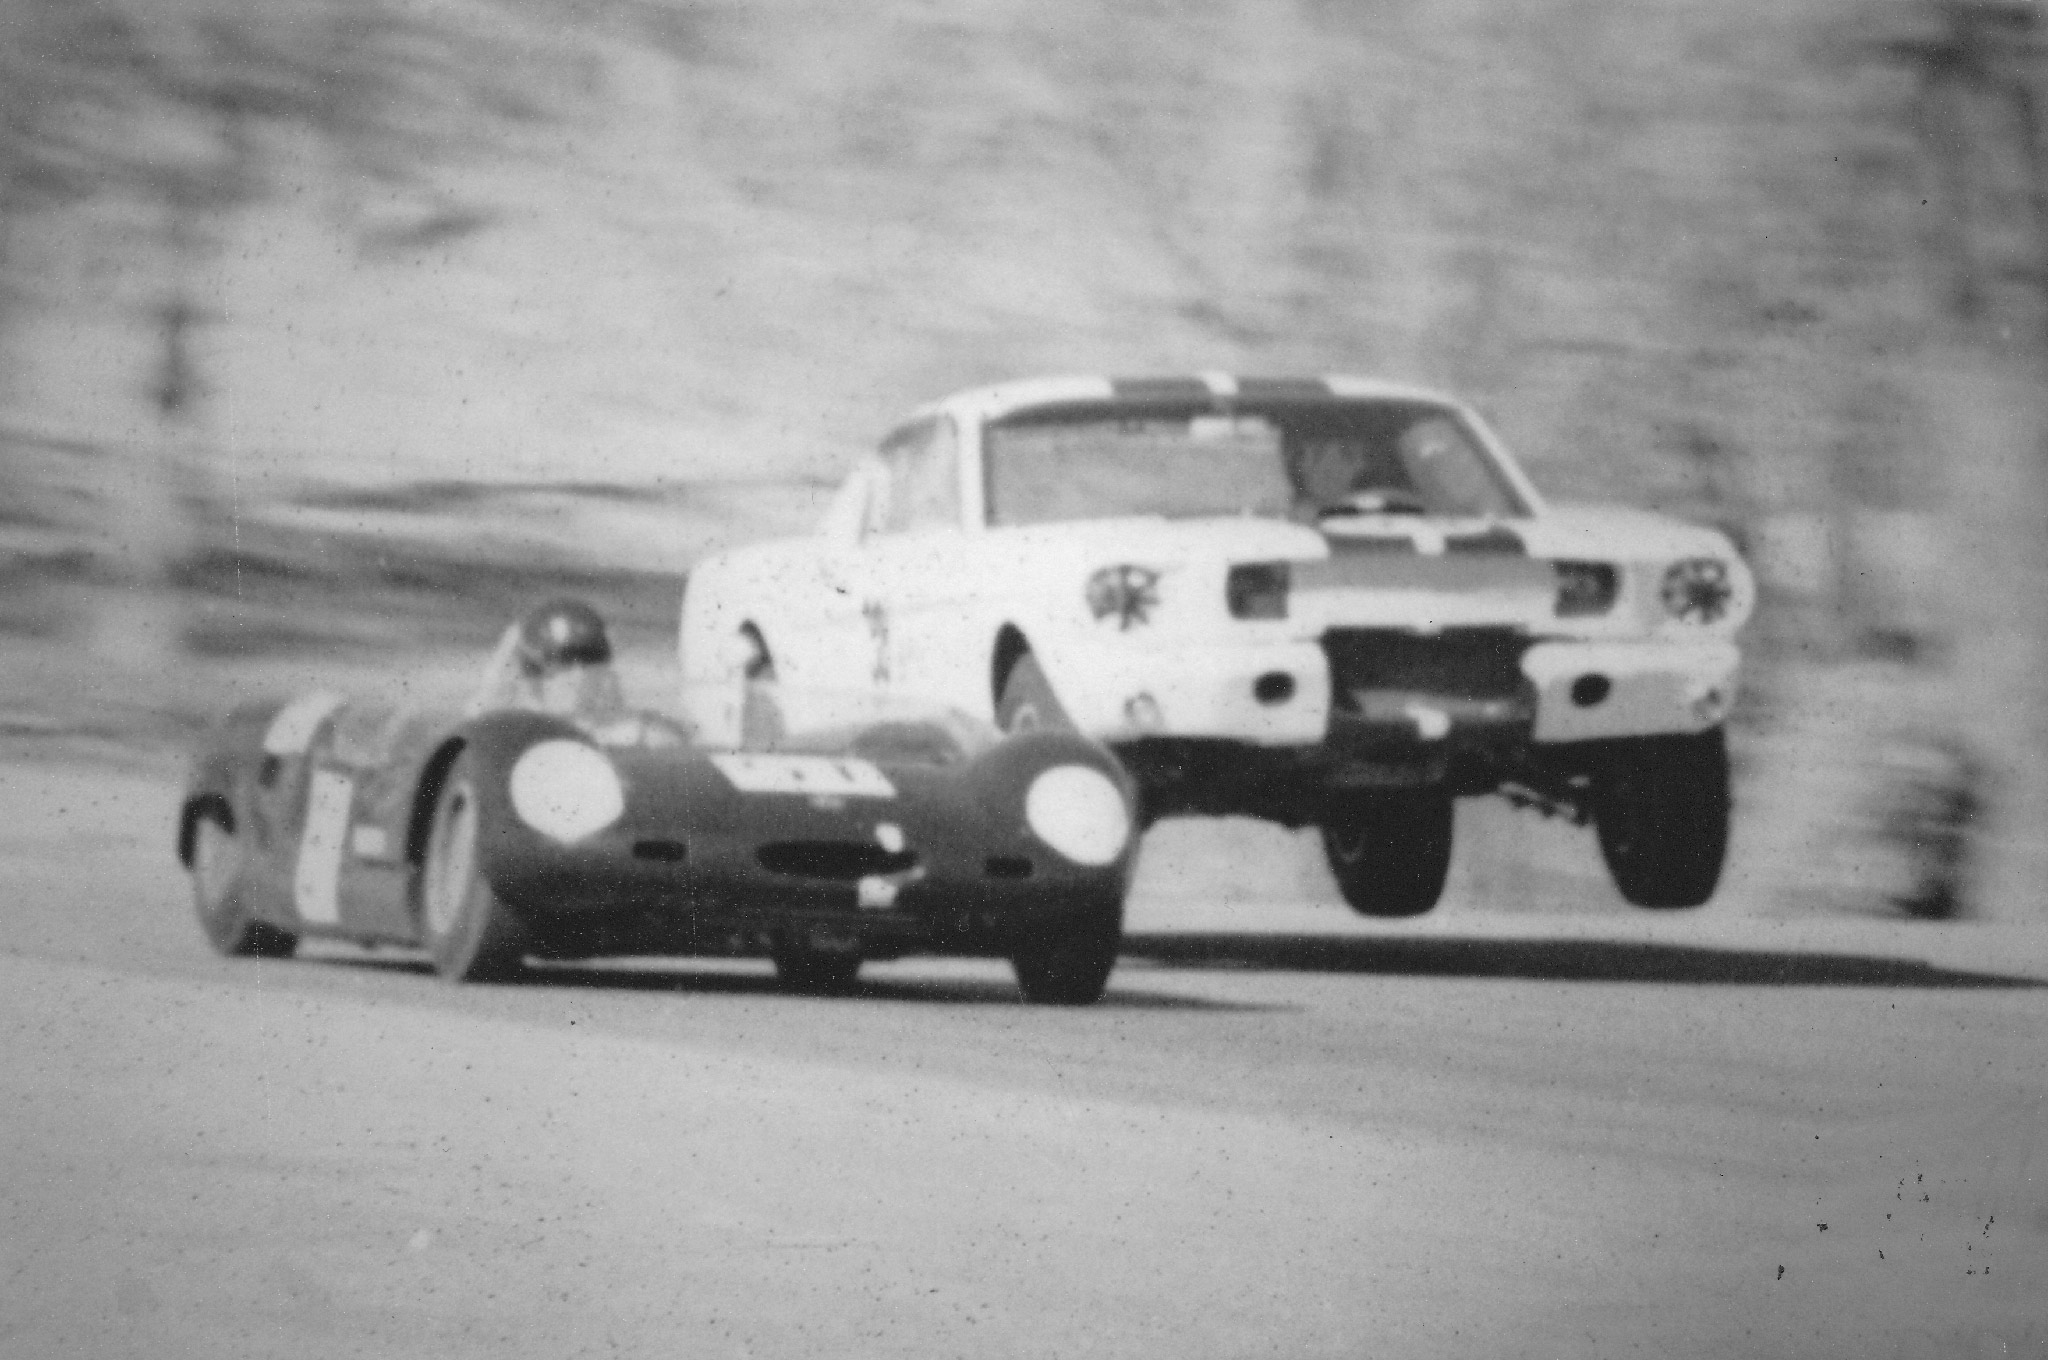 """This photo is very grainy but nonetheless famous, showing Ken Miles and his GT-350 R code going airborne while about to pass Charles Barns and his Merlyn. Alford said, """"Miles would shift into 4th gear, in the air, while leaping over the hump, with no engine whine, grinning from ear to ear. No one else was accelerating over the hump, only Miles.  The man was the fastest driver in B production that day, and was obviously utterly confident in his driving abilities. His control of the car was so smooth, effortless. His driving skills really stood out.""""   (Photographer unknown)"""